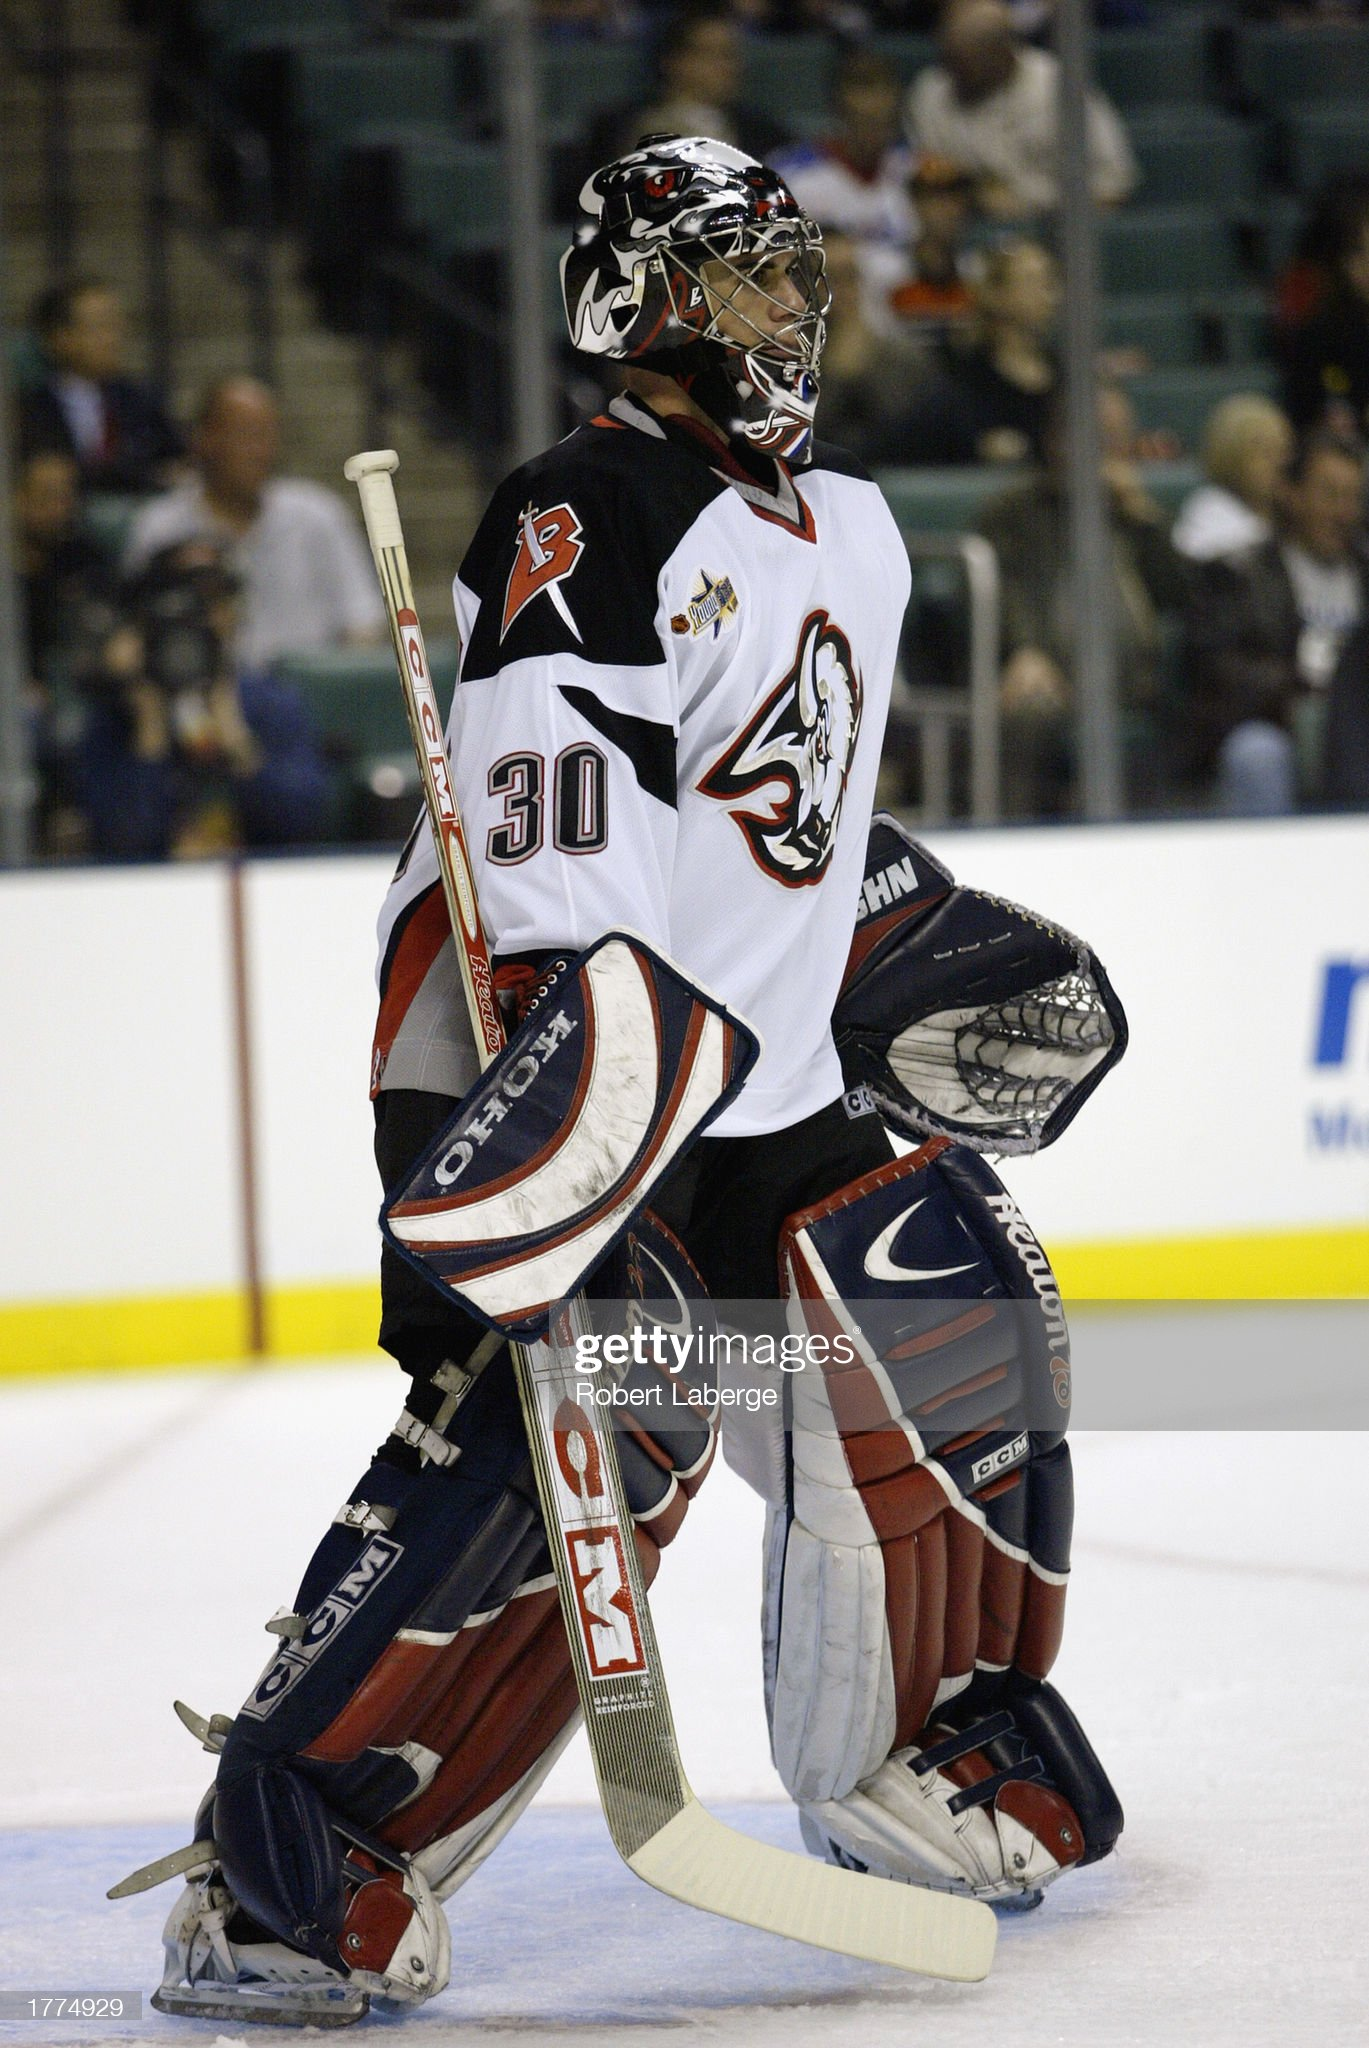 eastern-conference-goalie-ryan-miller-of